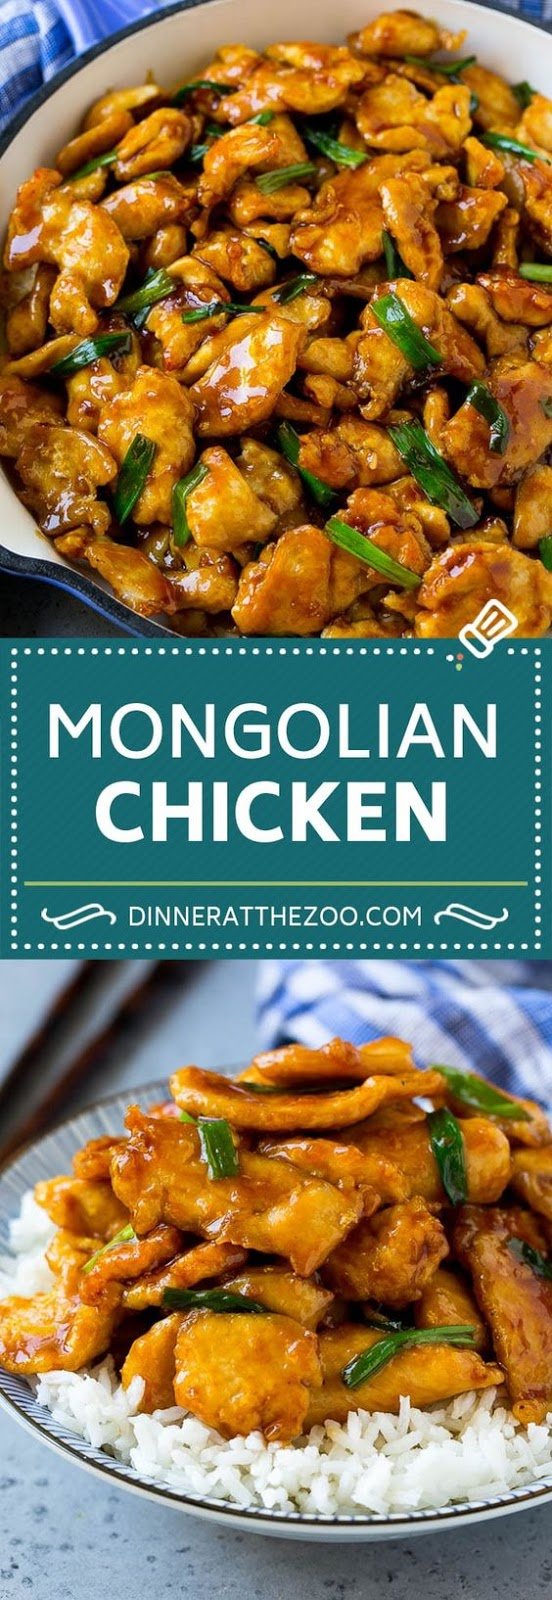 MONGOLIAN CHICKEN #recipes #healthychicken #chickenrecipes #healthychickenrecipes #food #foodporn #healthy #yummy #instafood #foodie #delicious #dinner #breakfast #dessert #lunch #vegan #cake #eatclean #homemade #diet #healthyfood #cleaneating #foodstagram